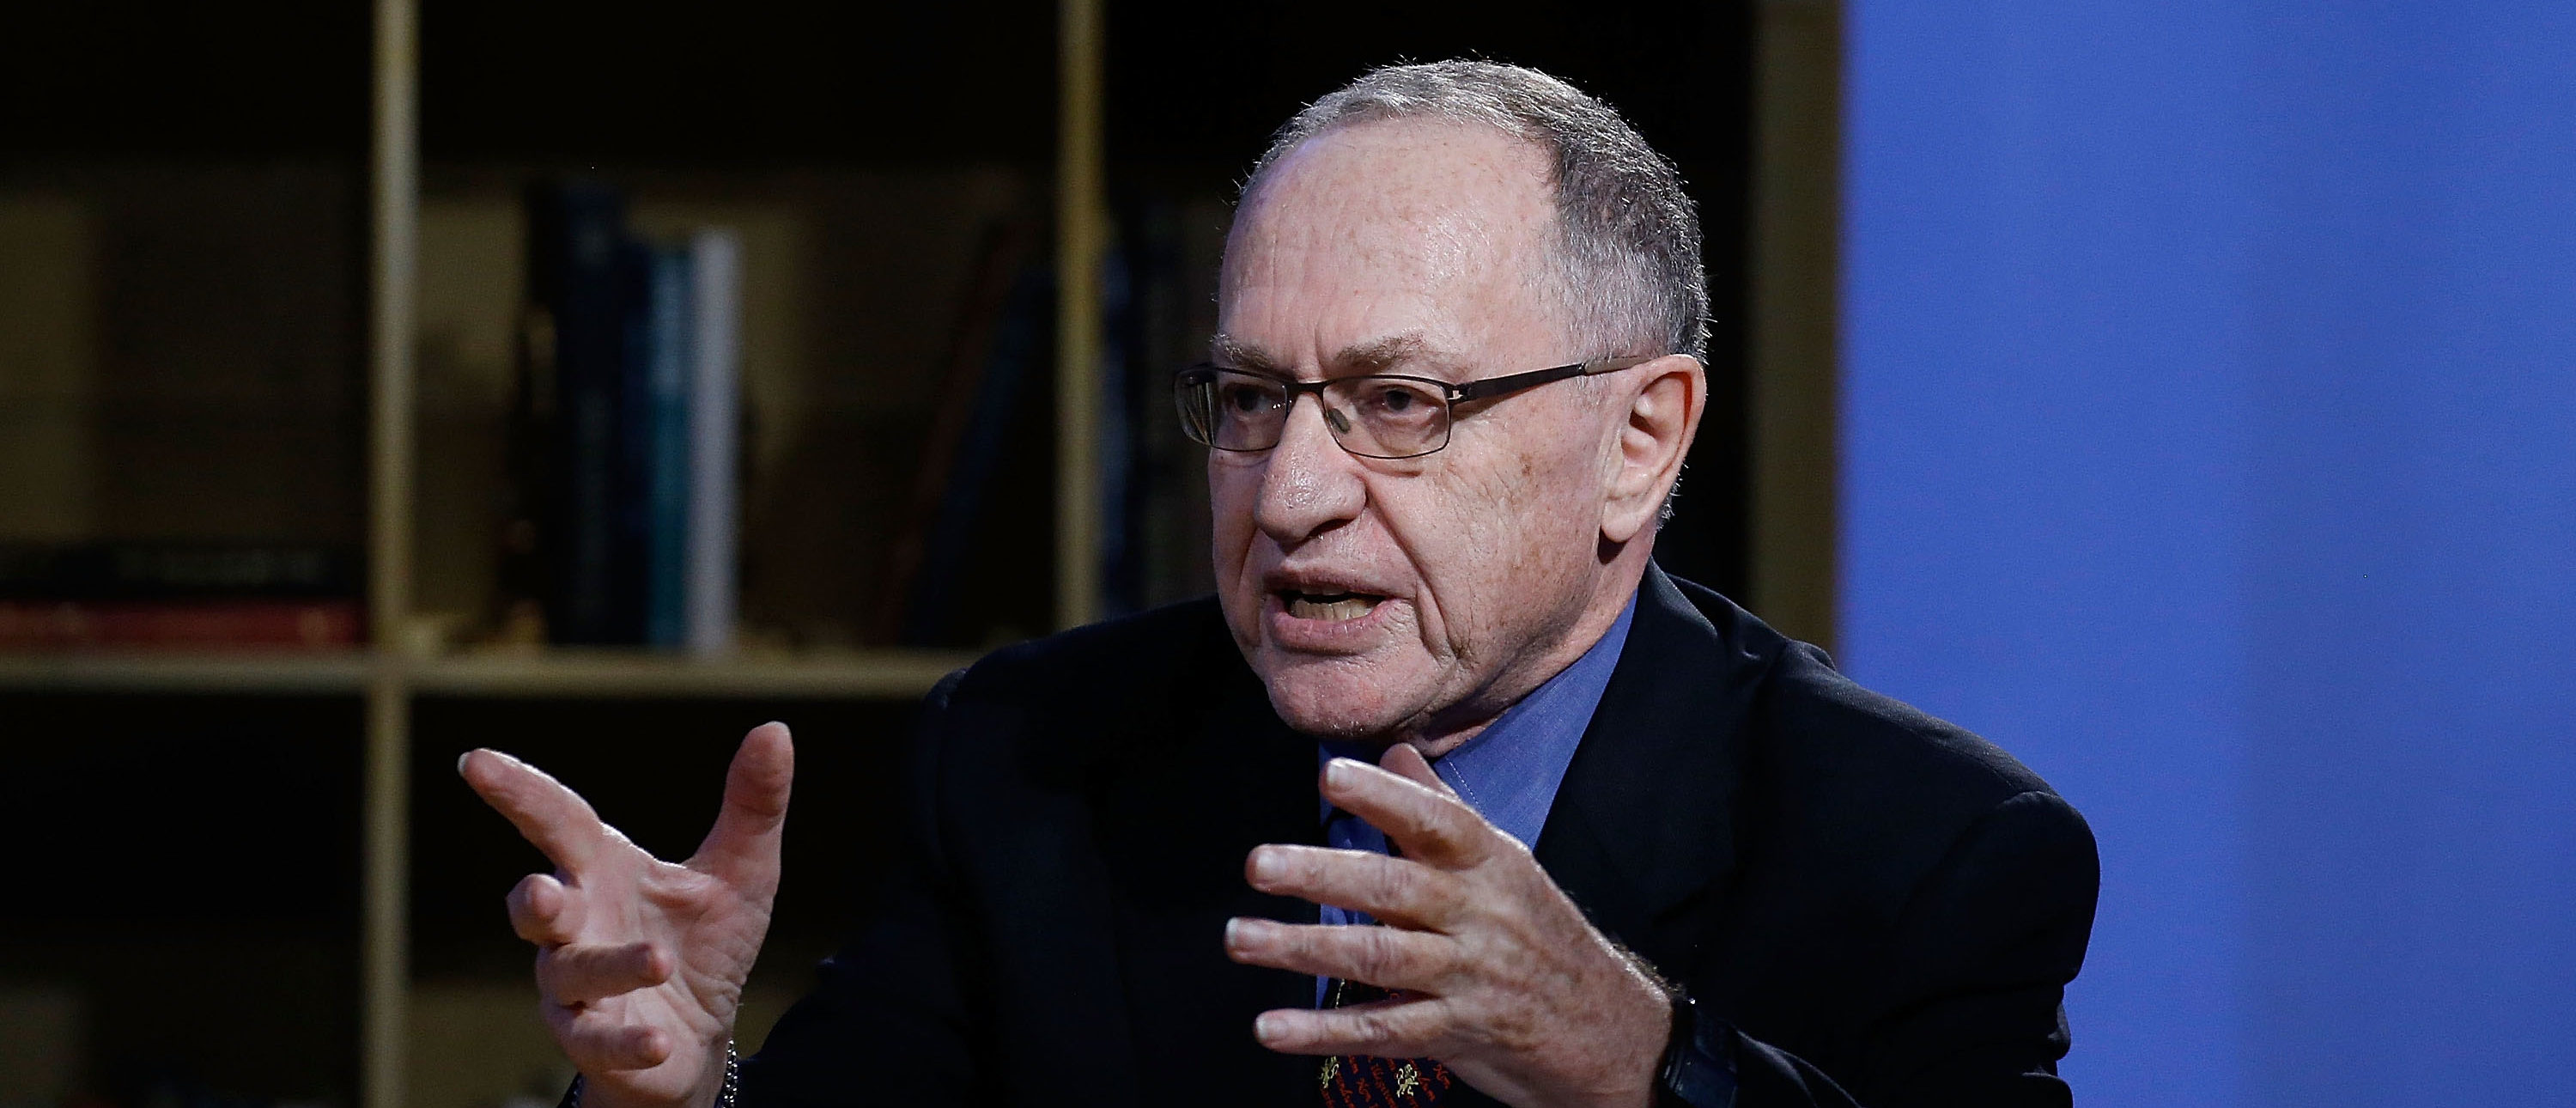 """Alan Dershowitz attends Hulu Presents """"Triumph's Election Special"""" produced by Funny Or Die at NEP Studios on February 3, 2016 in New York City. (Photo by John Lamparski/Getty Images for Hulu)"""